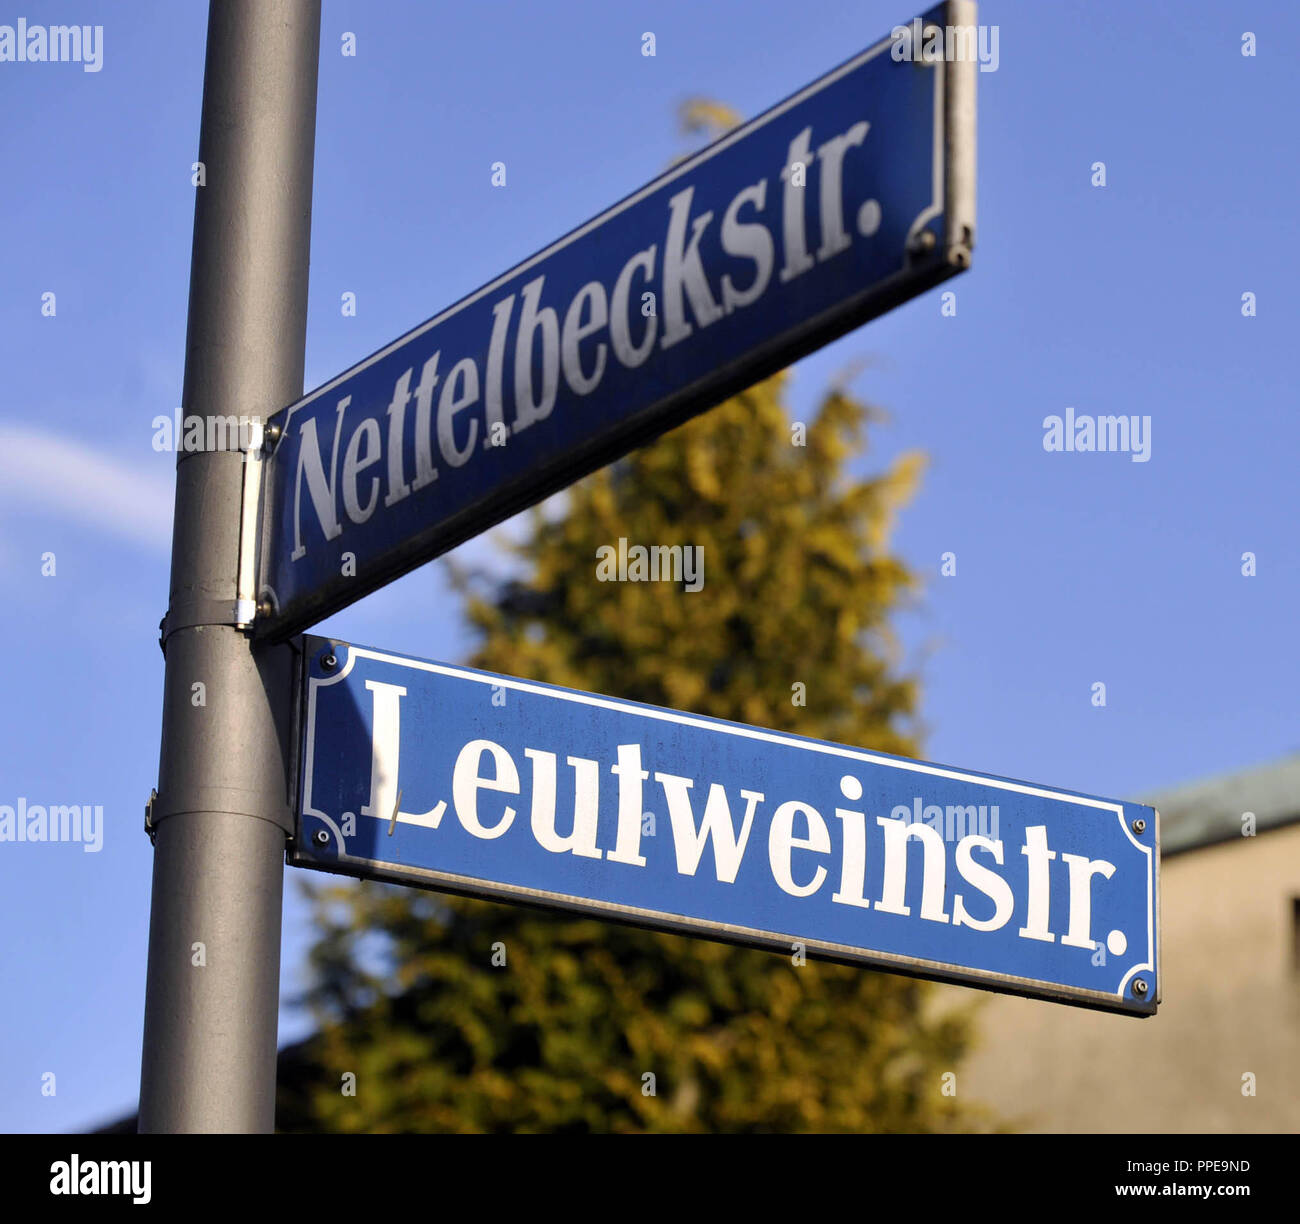 Locations and street names from the colonial period, here the Nettelbeckstrasse corner Leutweinstrasse, a name change comes to discussion again and again. - Stock Image